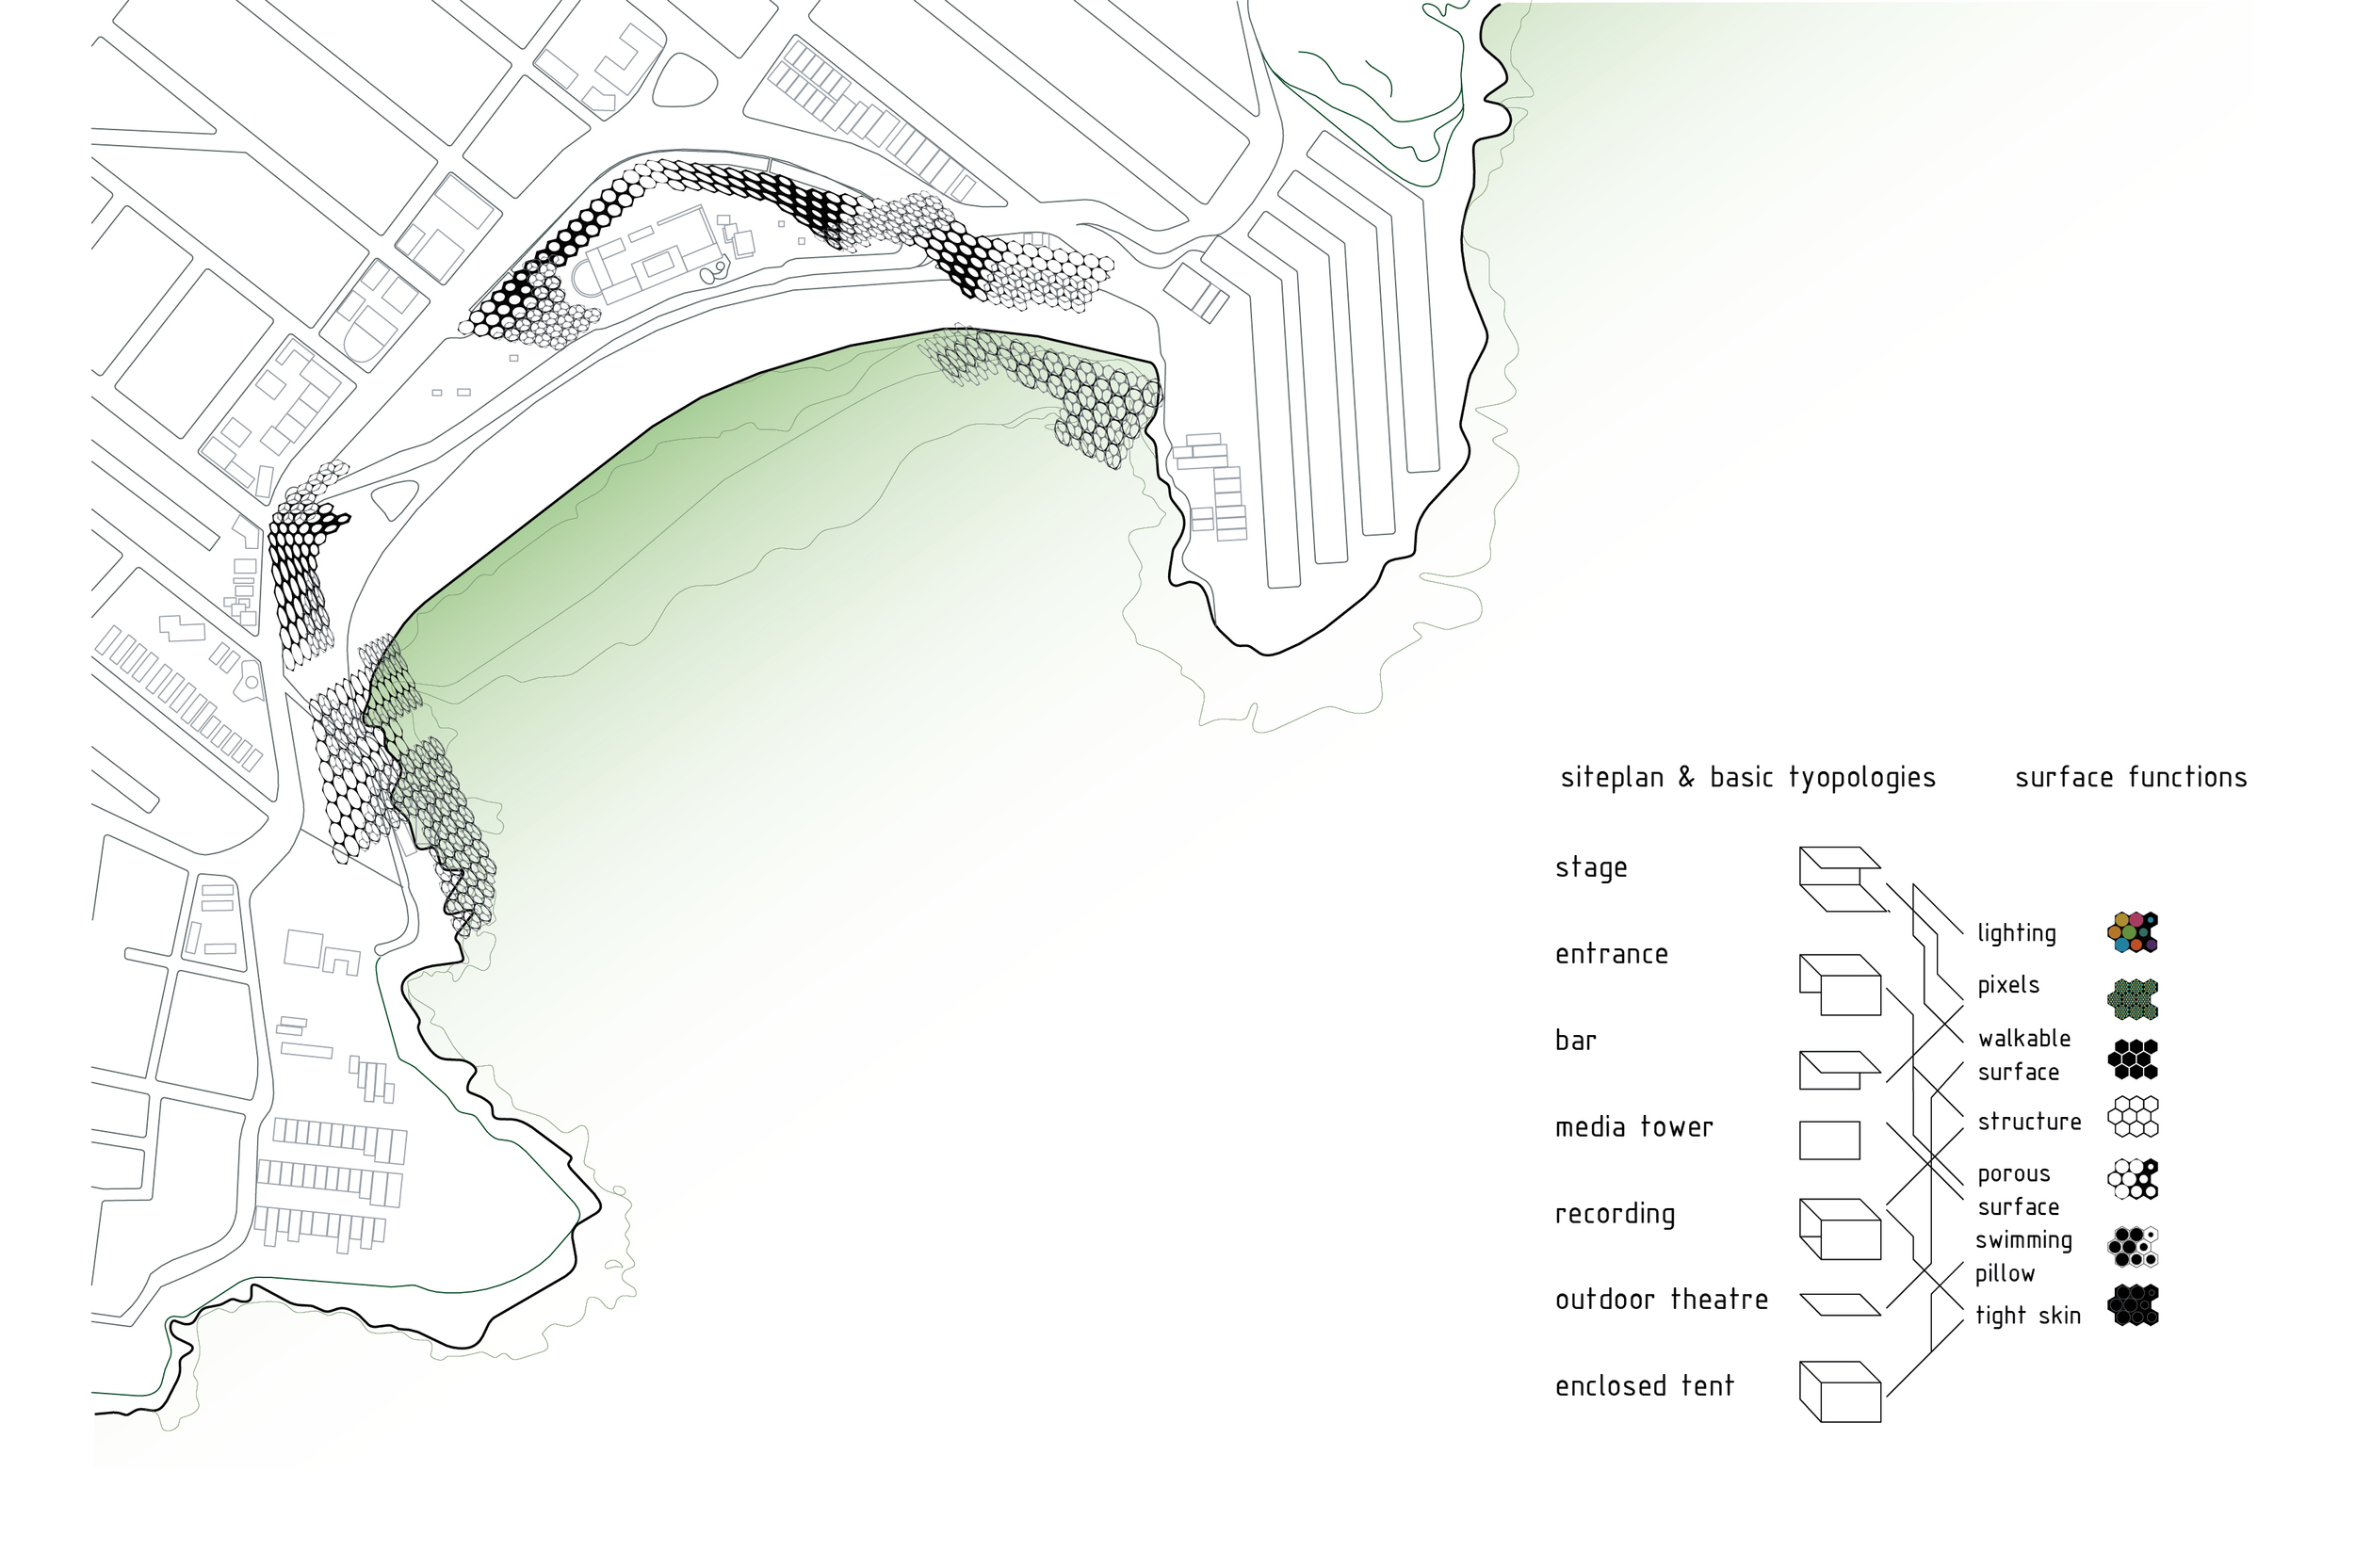 Site plan and basic typologies & surface functions